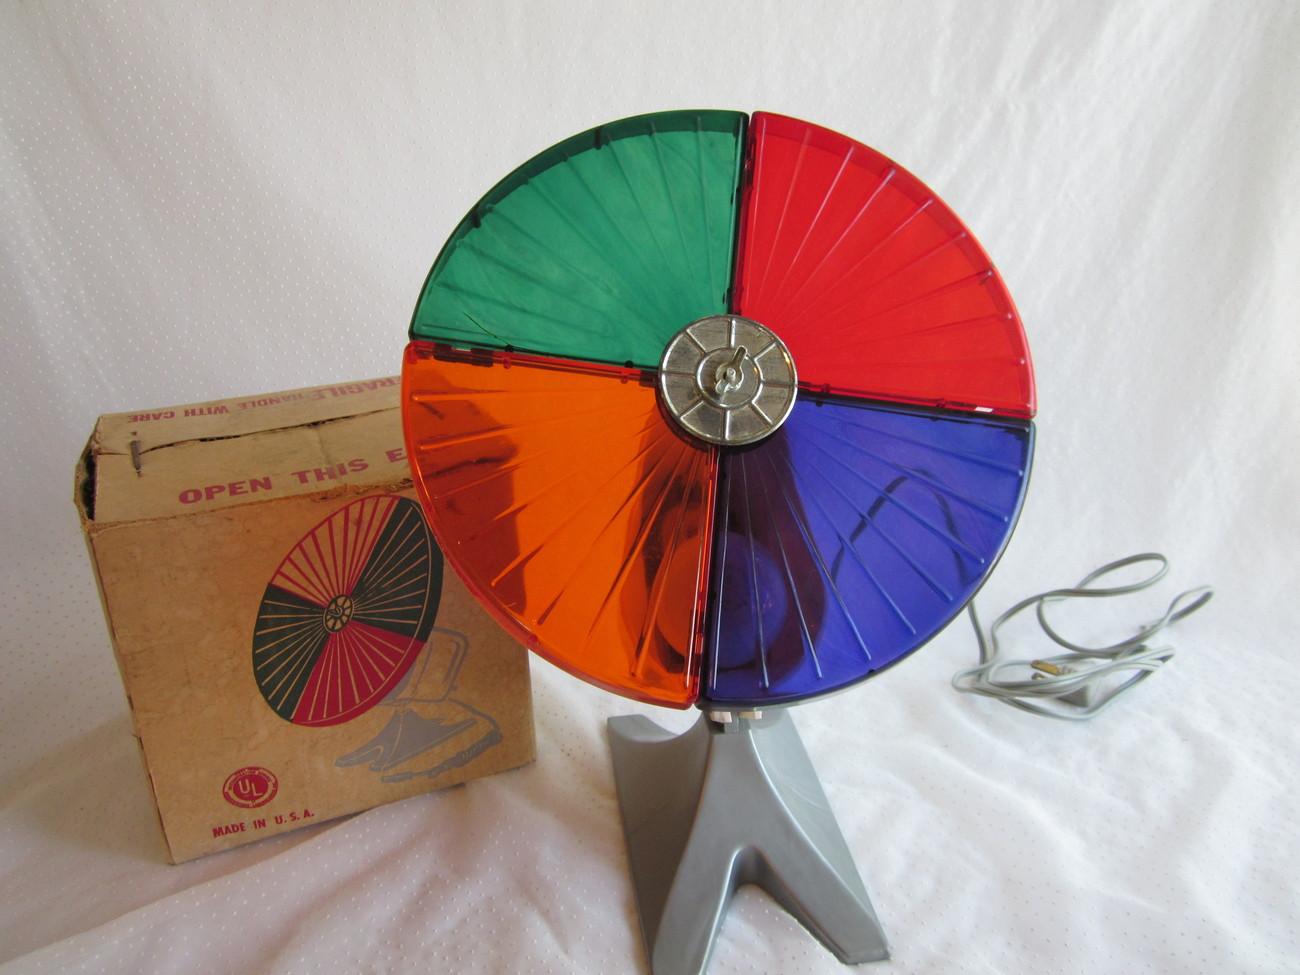 Colortone Roto Wheel Snapit Vintage Aluminum Tree Light 4 Colors